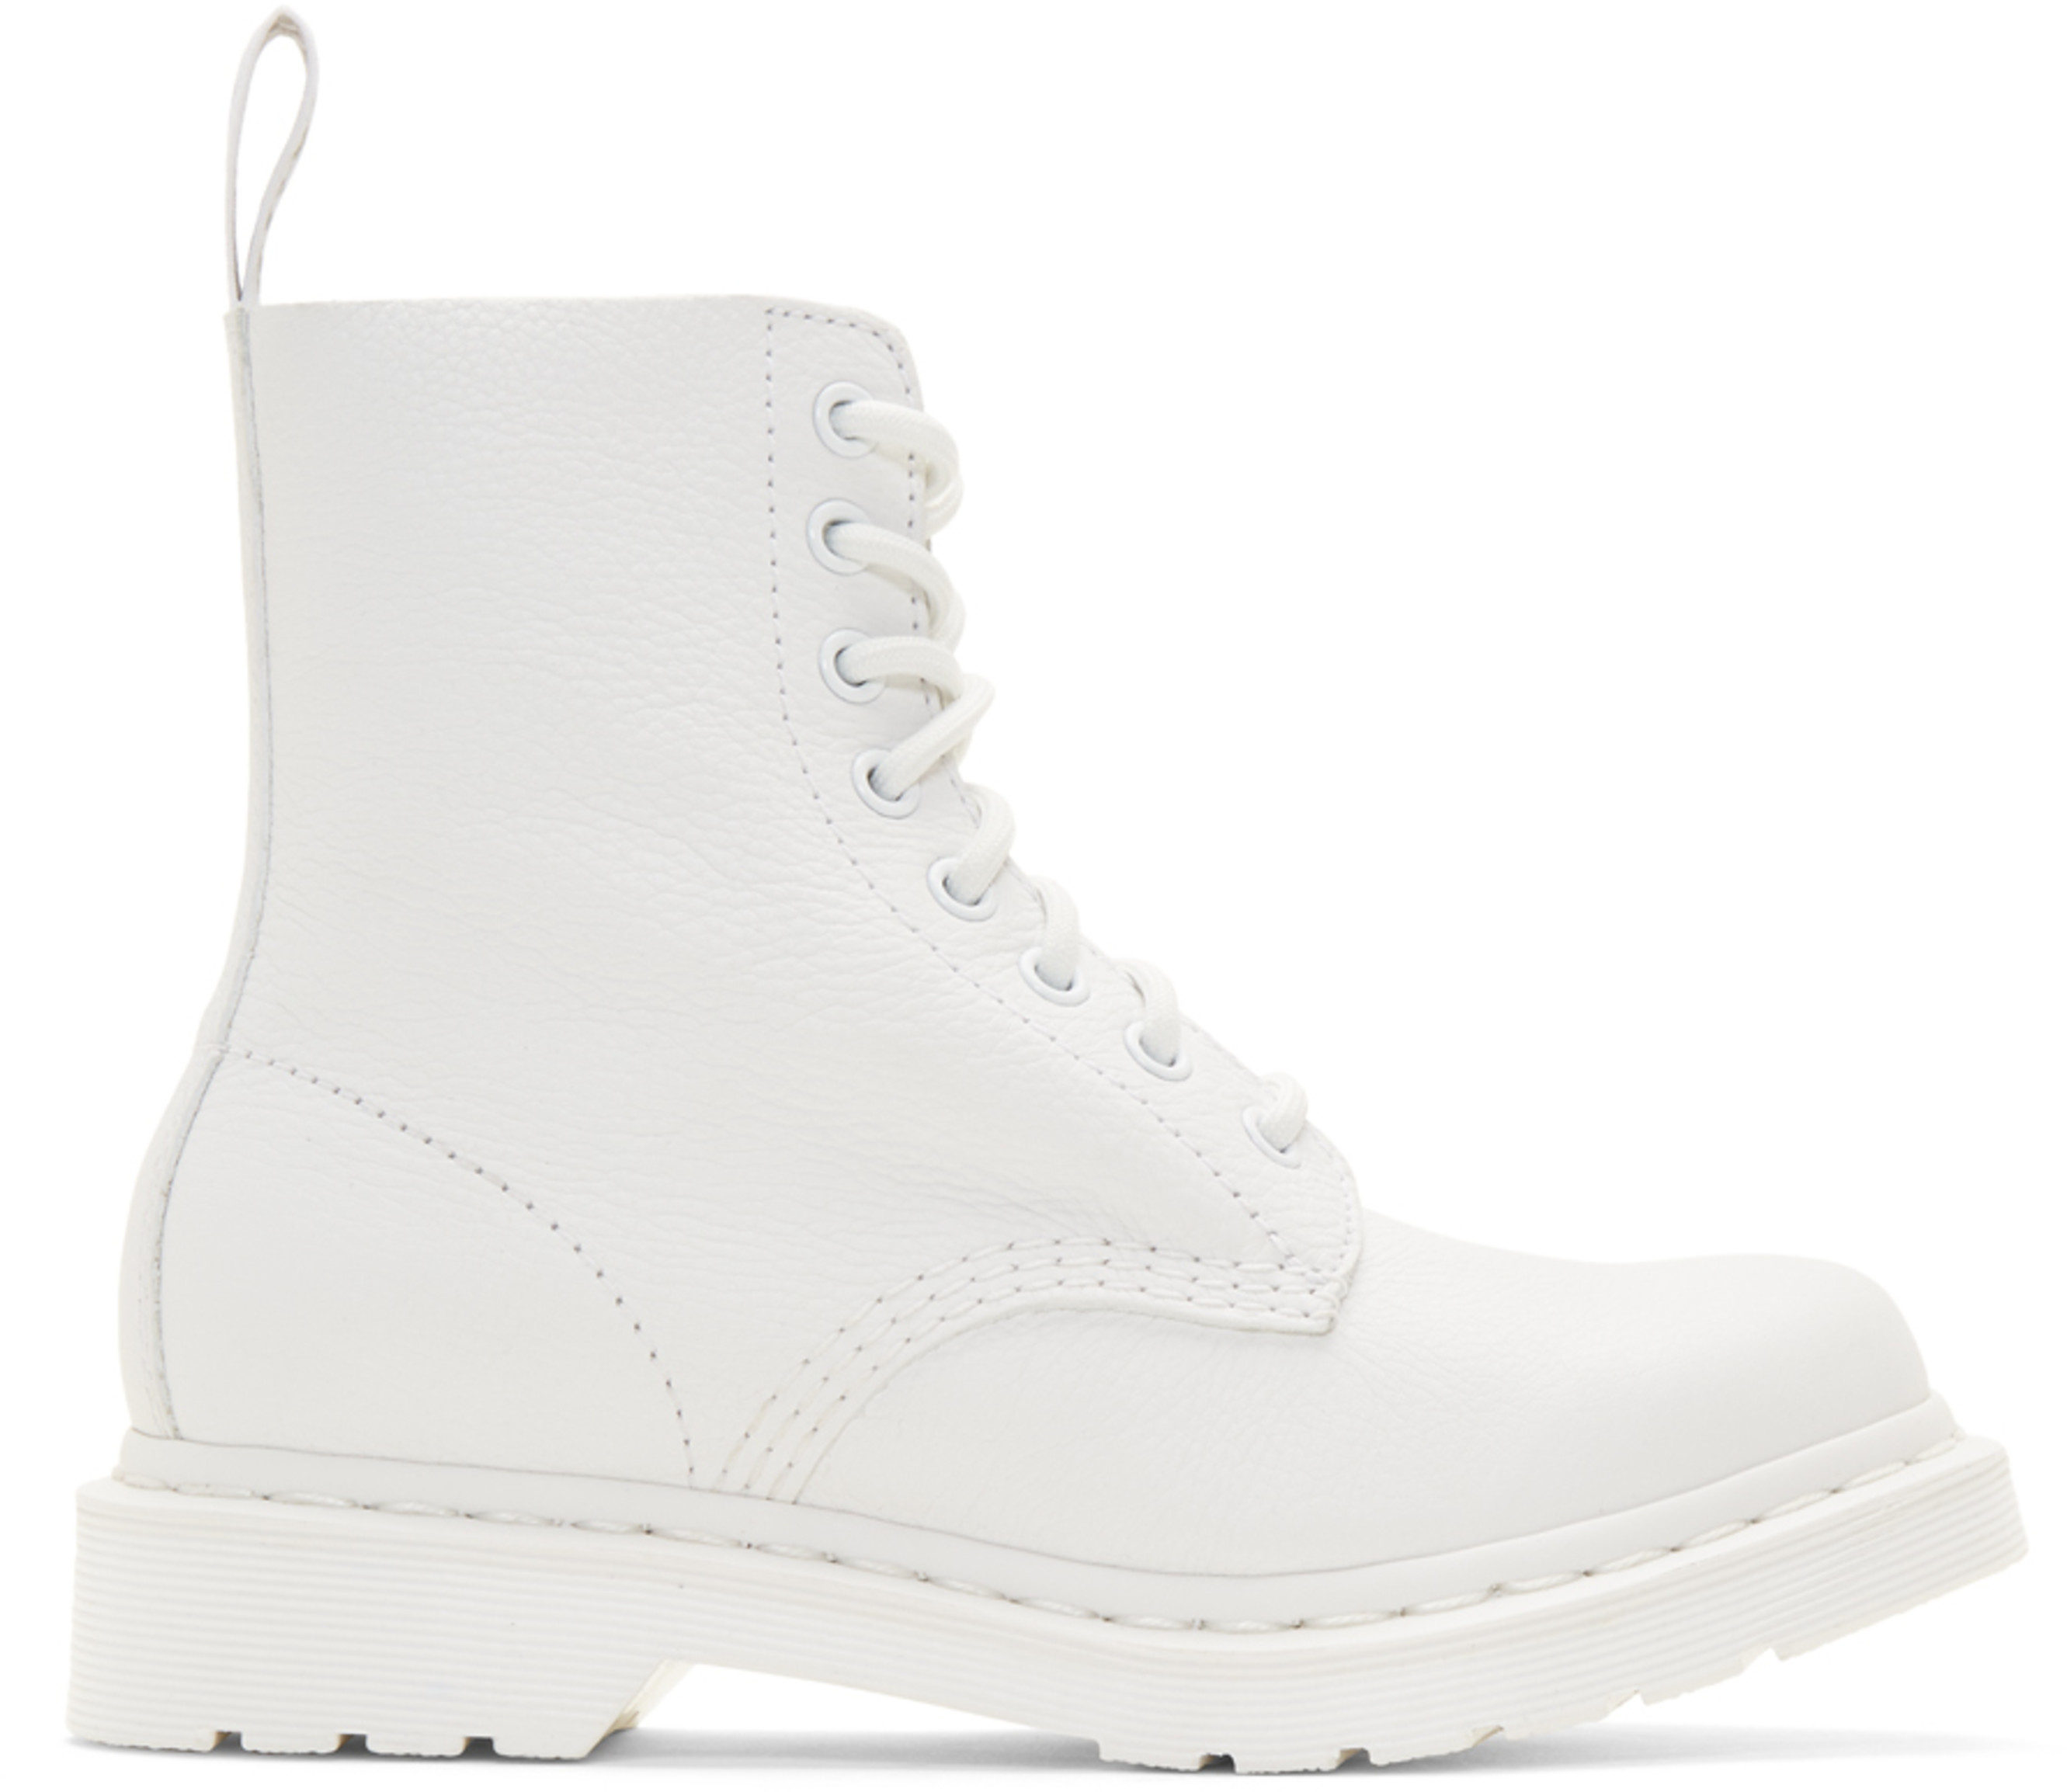 b9494f011b45 Dr. Martens for Women SS19 Collection